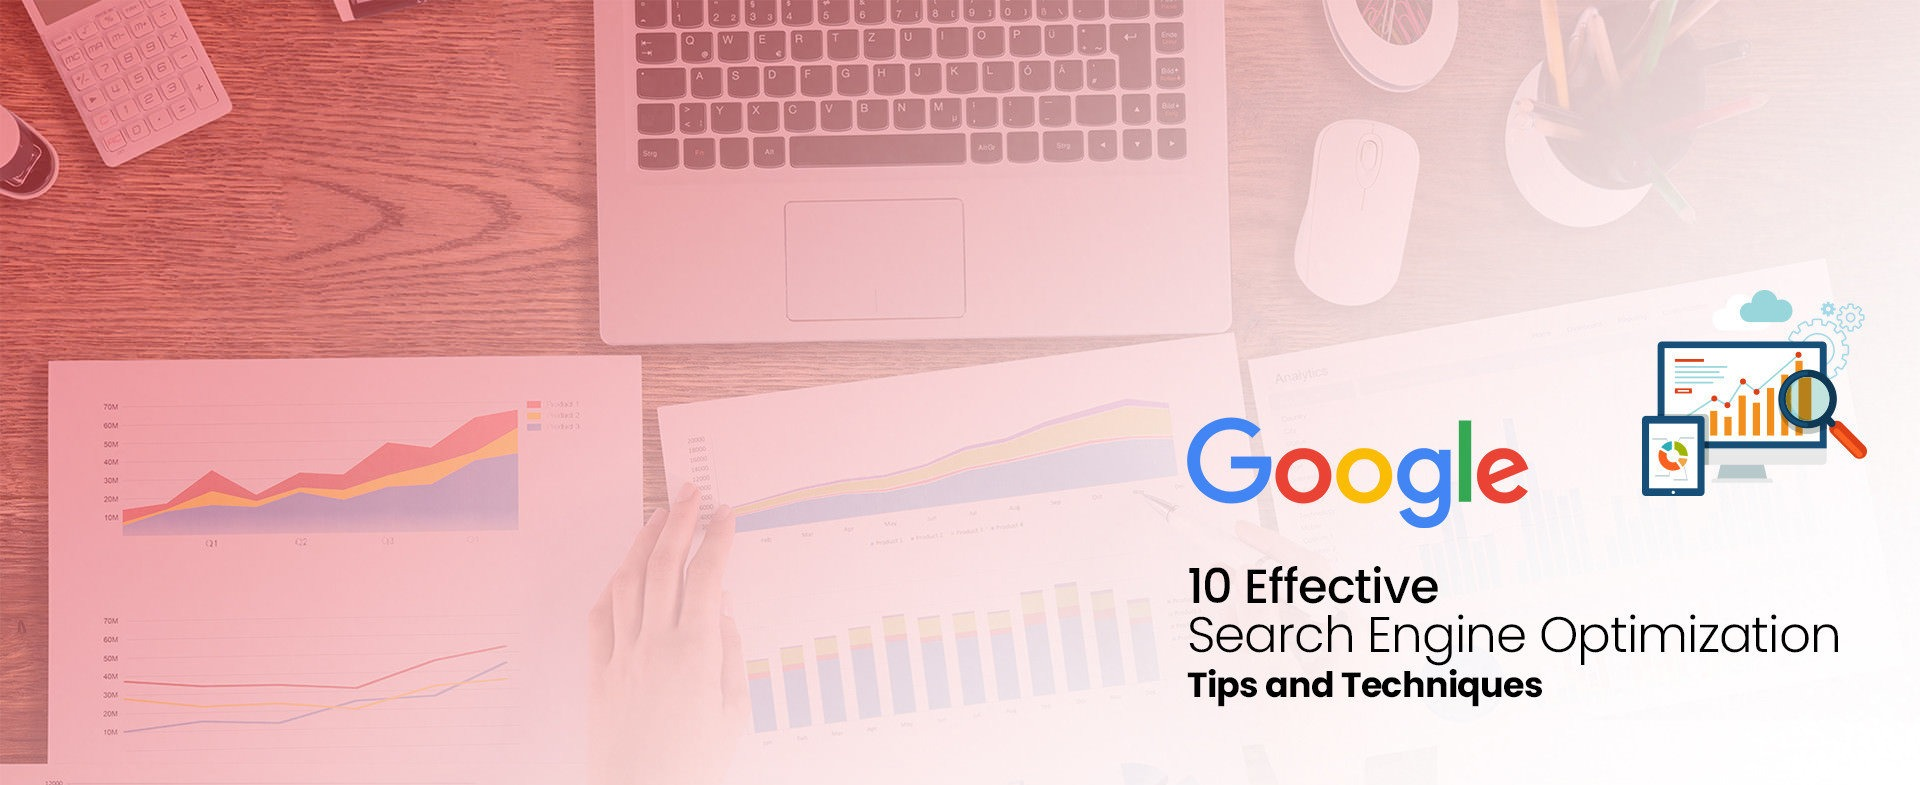 10 Effective Search Engine Optimization Tips and Techniques for UAE